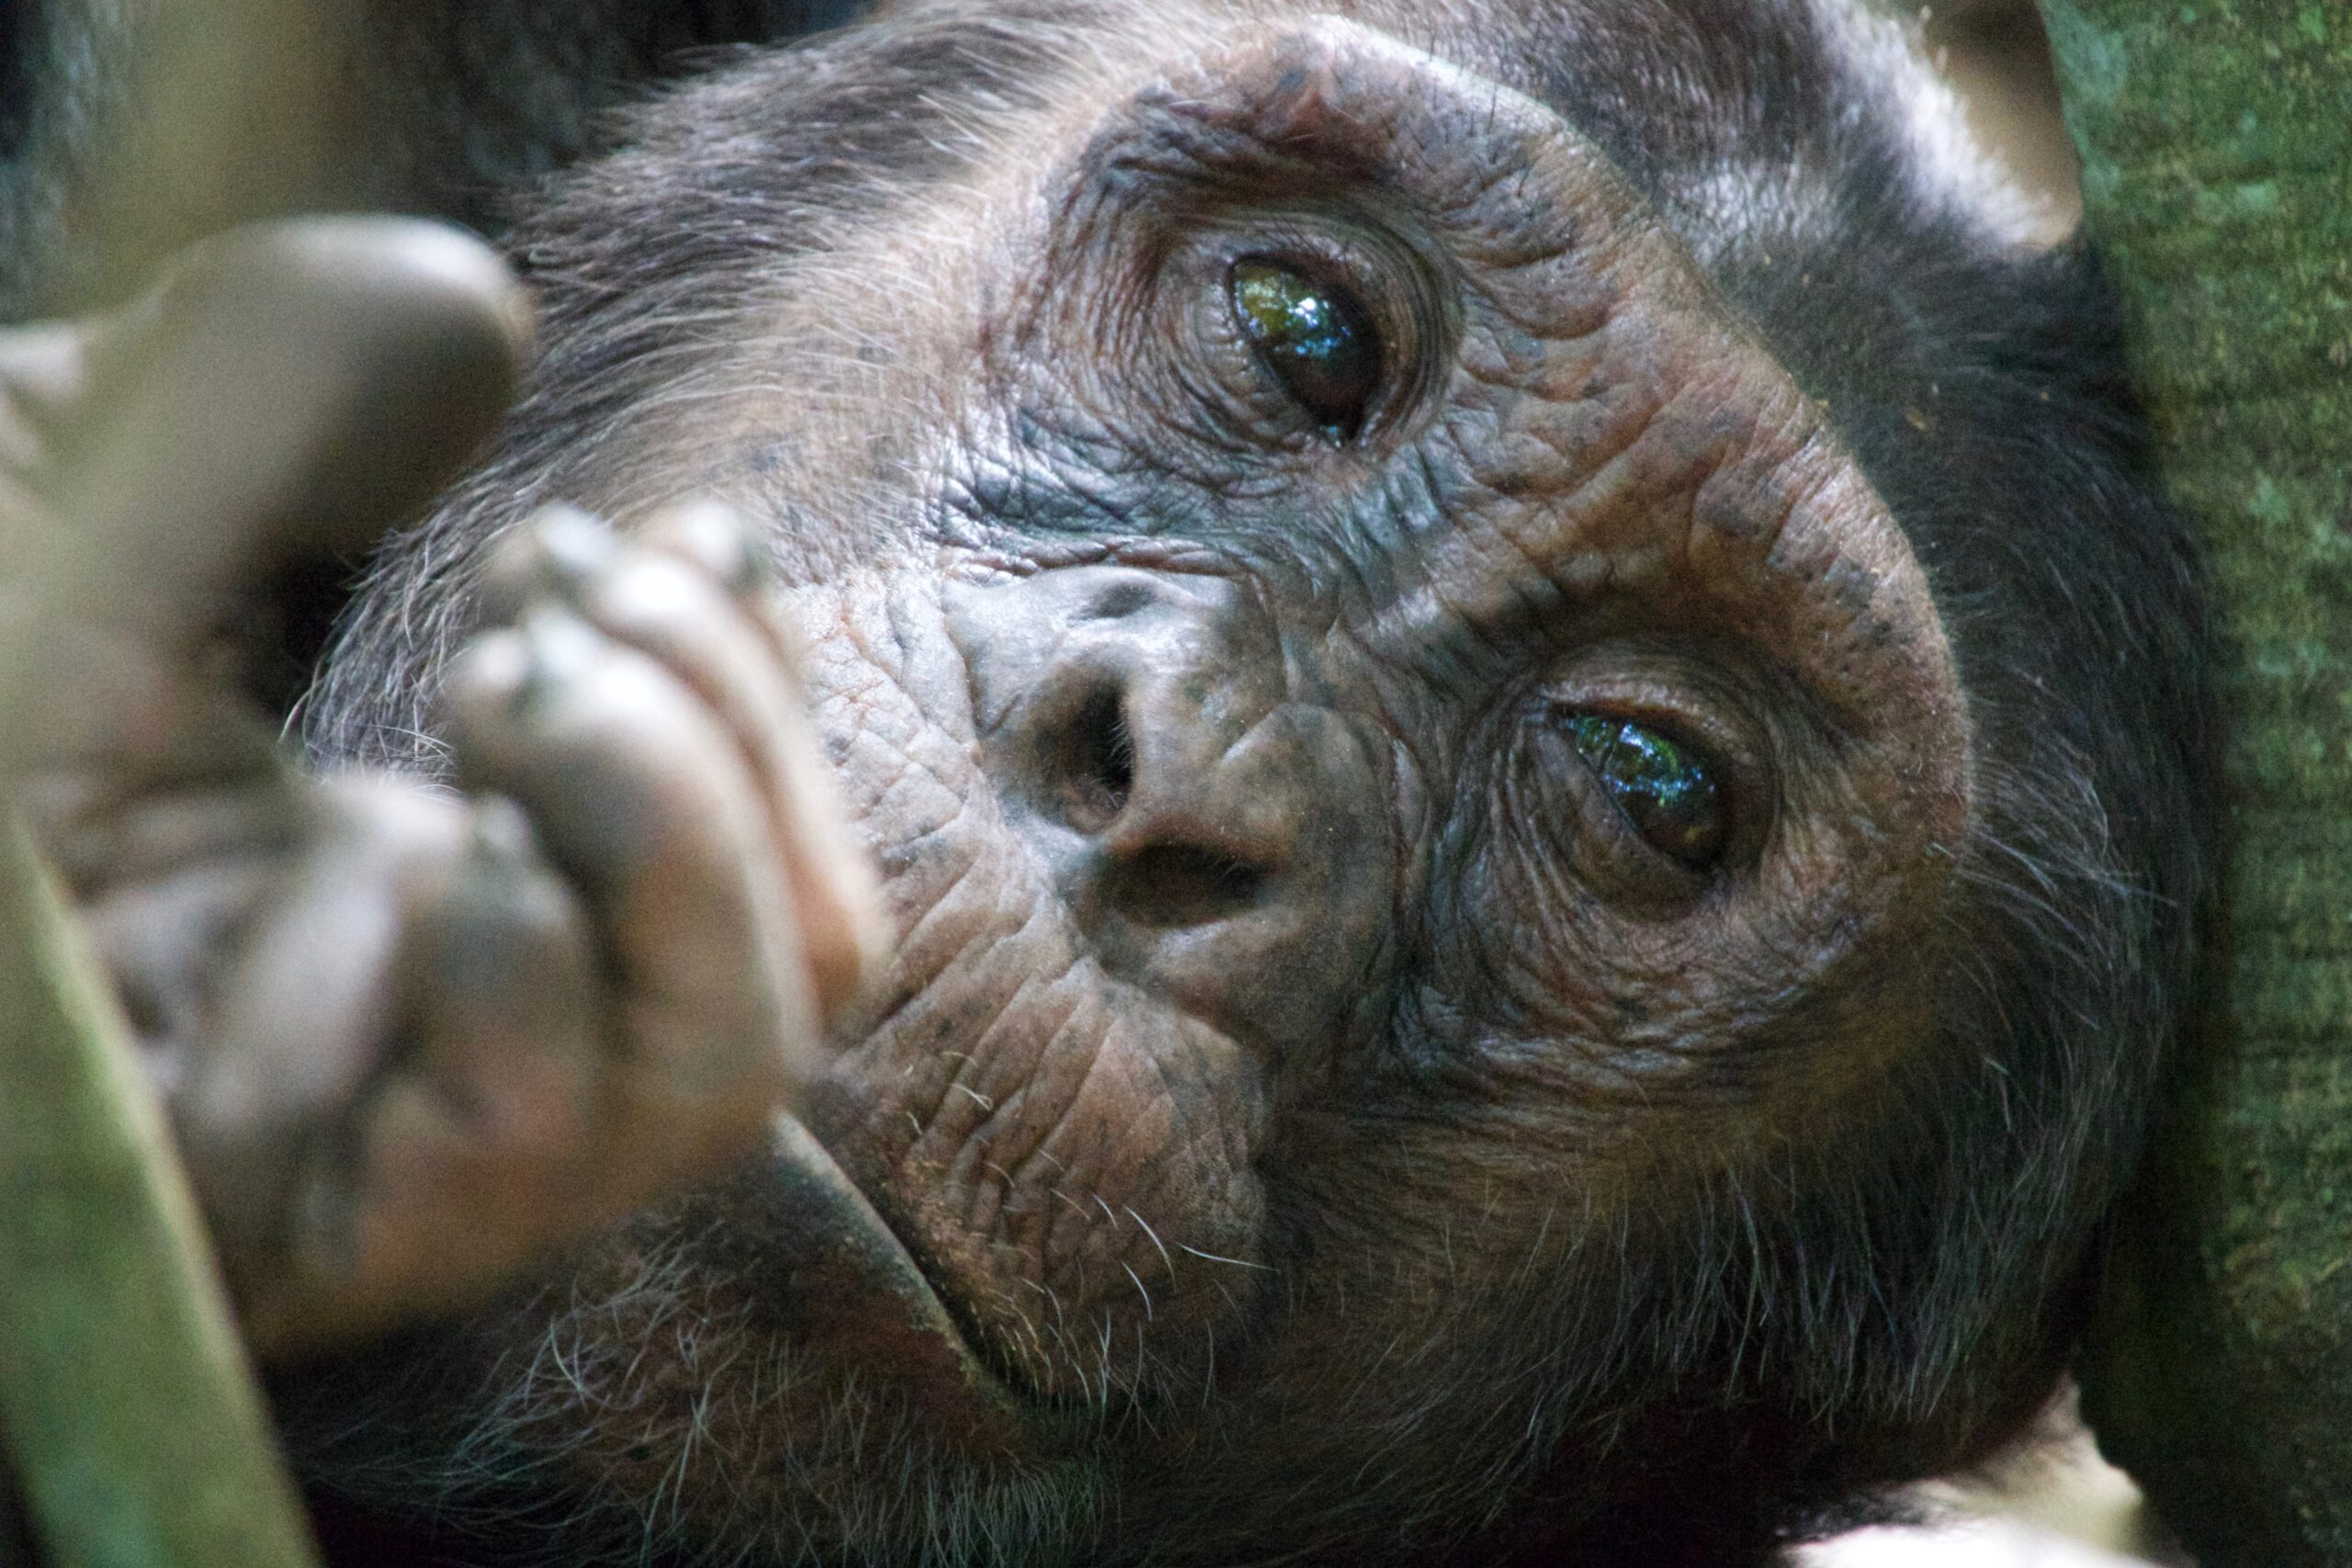 close up of chimpanzee's face and hand